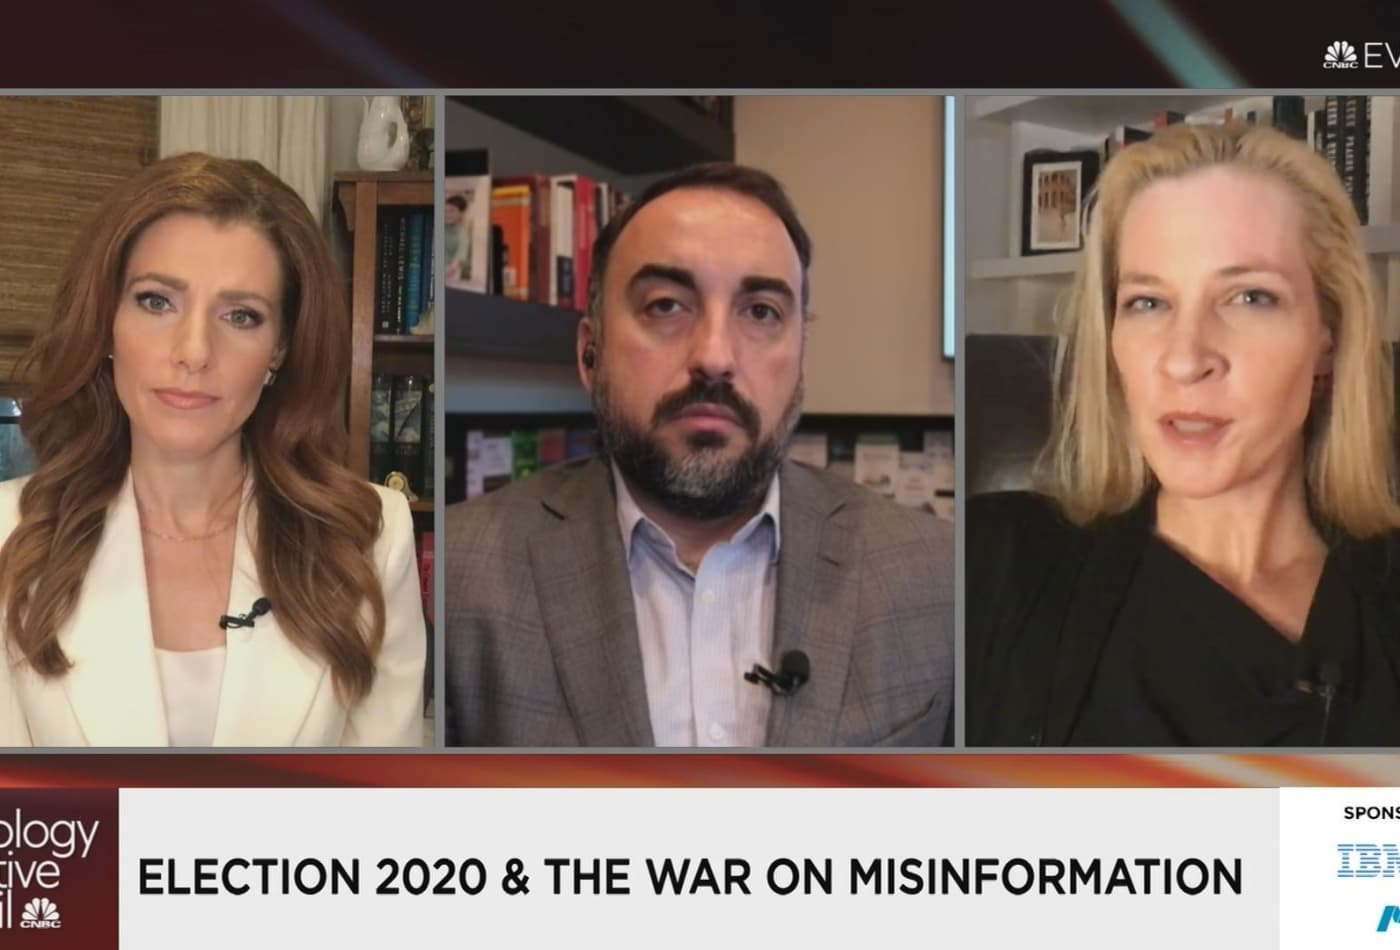 Post-2020 election, Covid vaccine is biggest disinformation threat on the internet: Former Facebook security chief